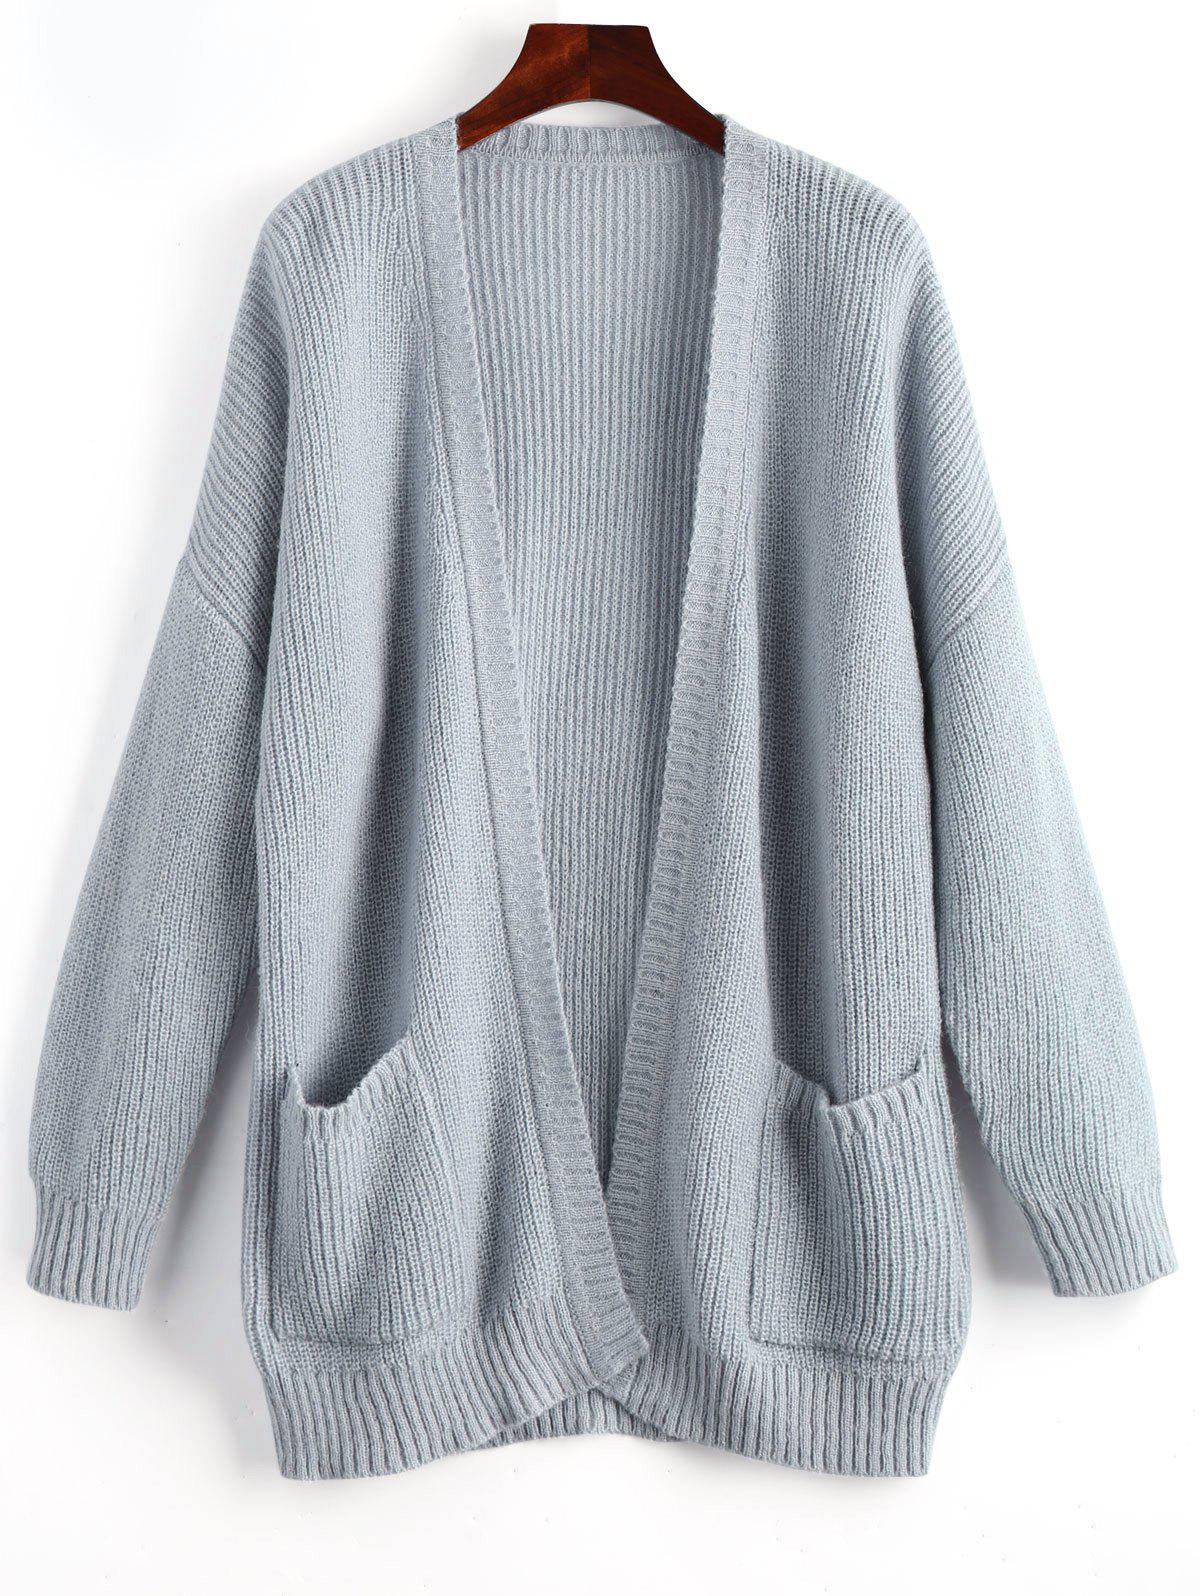 Oversized Ribbed Long Sleeve Cardigan 231358801